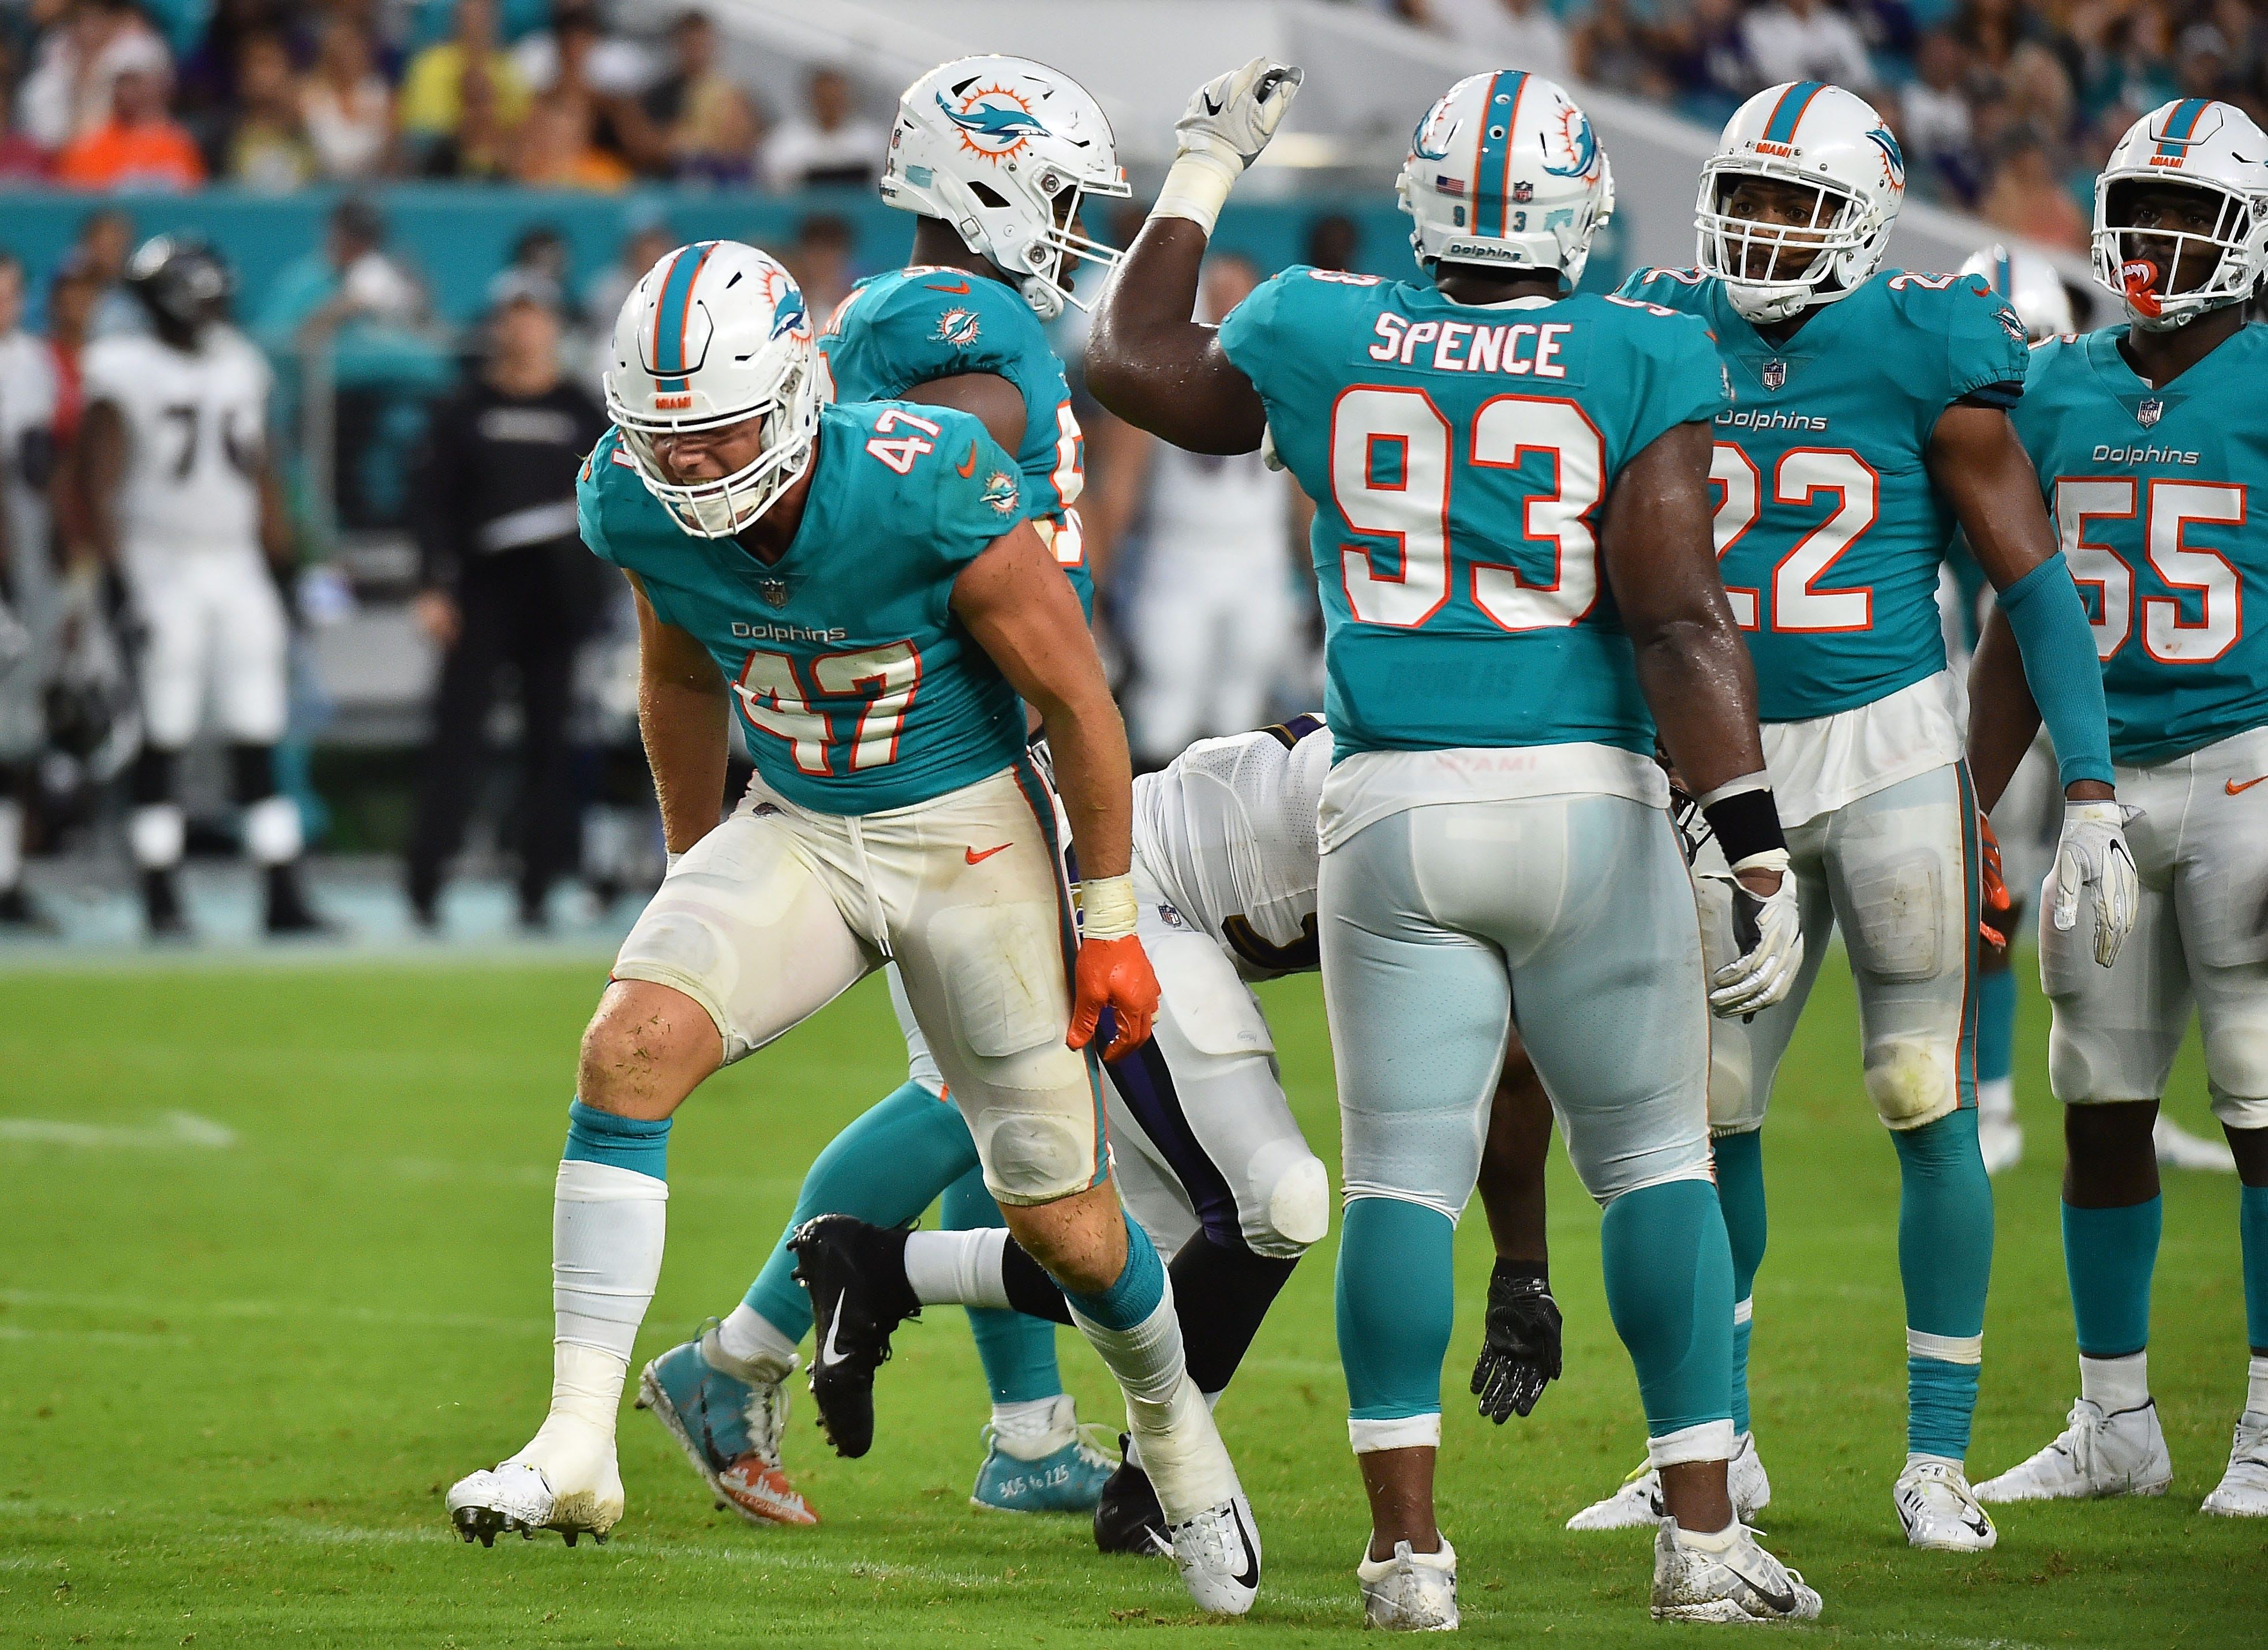 Dolphins LB Kiko Alonso accidentally ends up on wrong sideline after a tackle